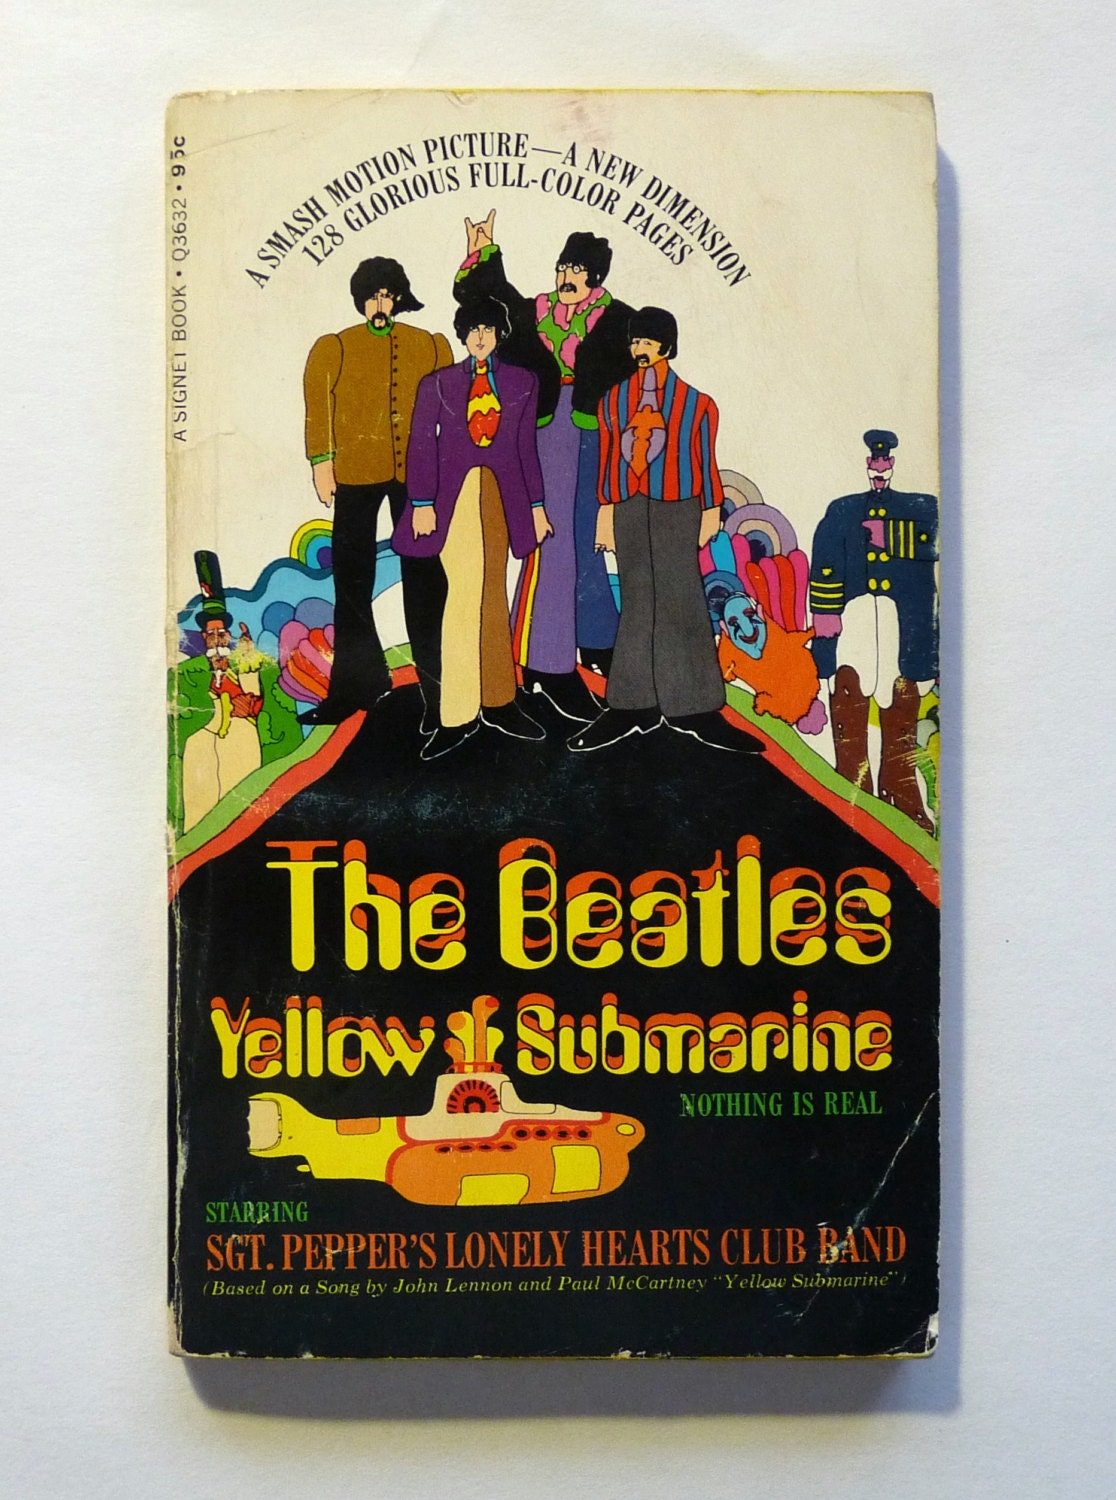 the beatles yellow submarine 1968 paperback book first. Black Bedroom Furniture Sets. Home Design Ideas